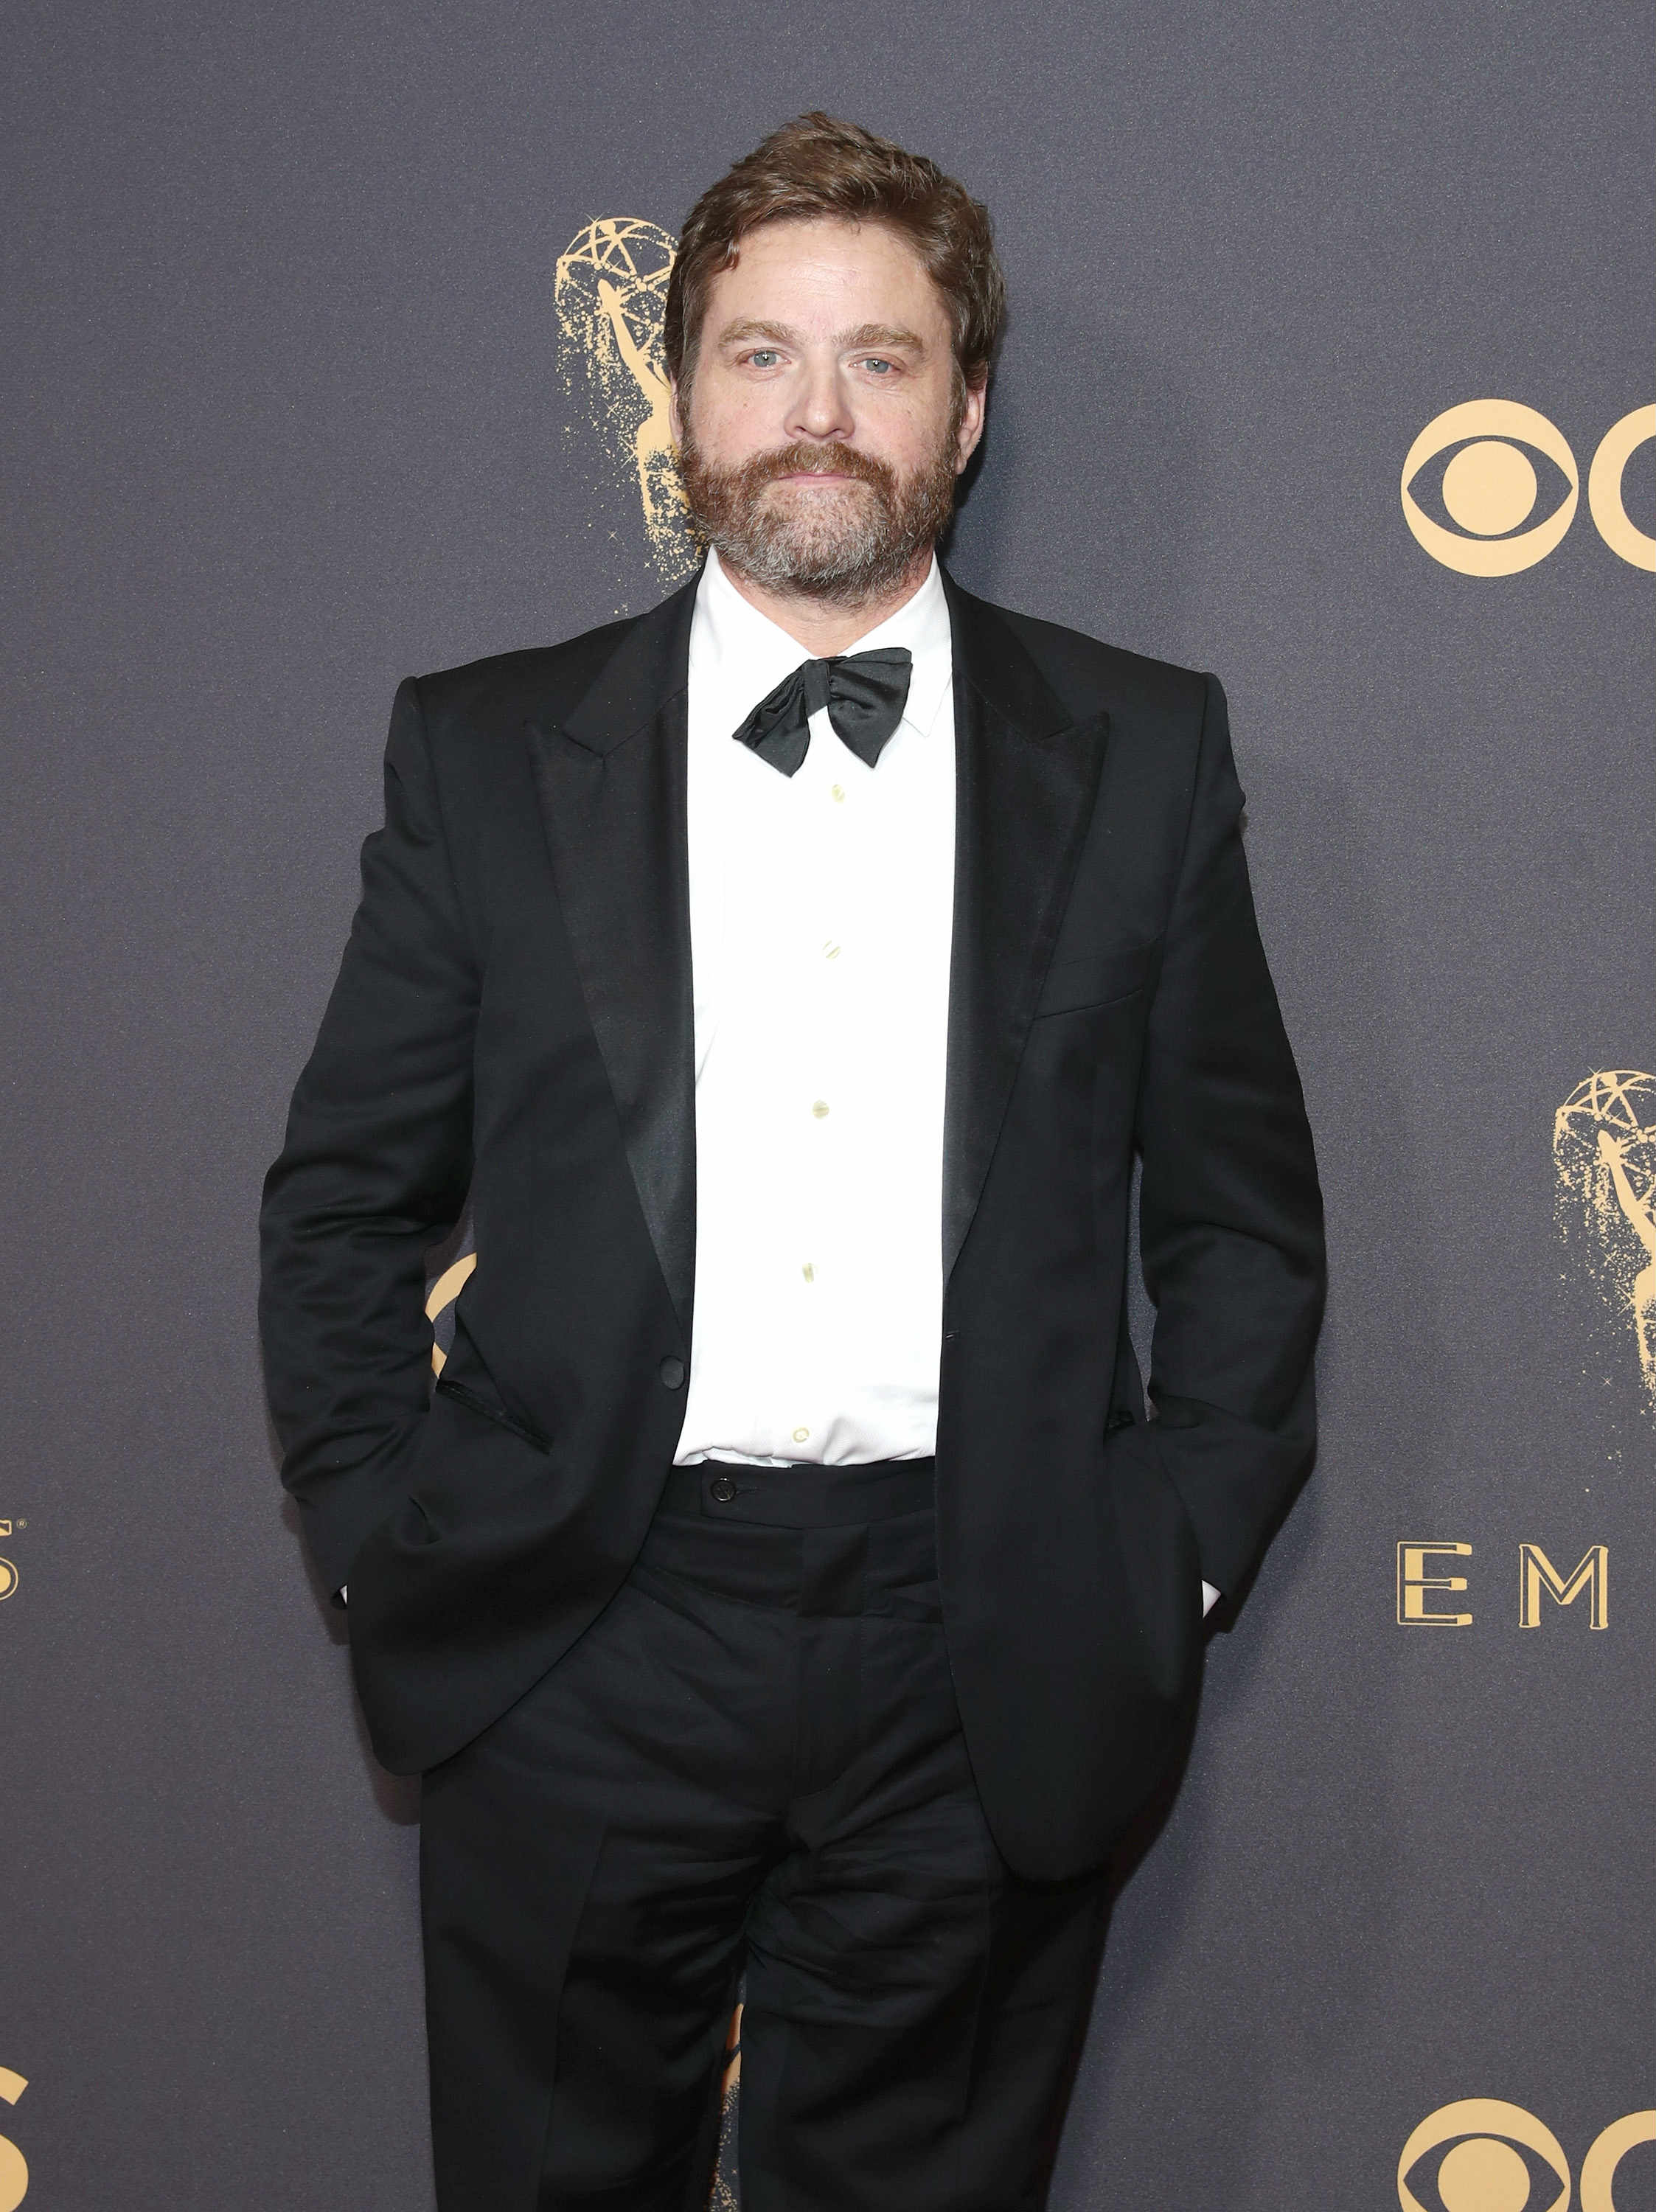 The Hangover star Zach Galifianakis debuts major weight loss: See the photo!